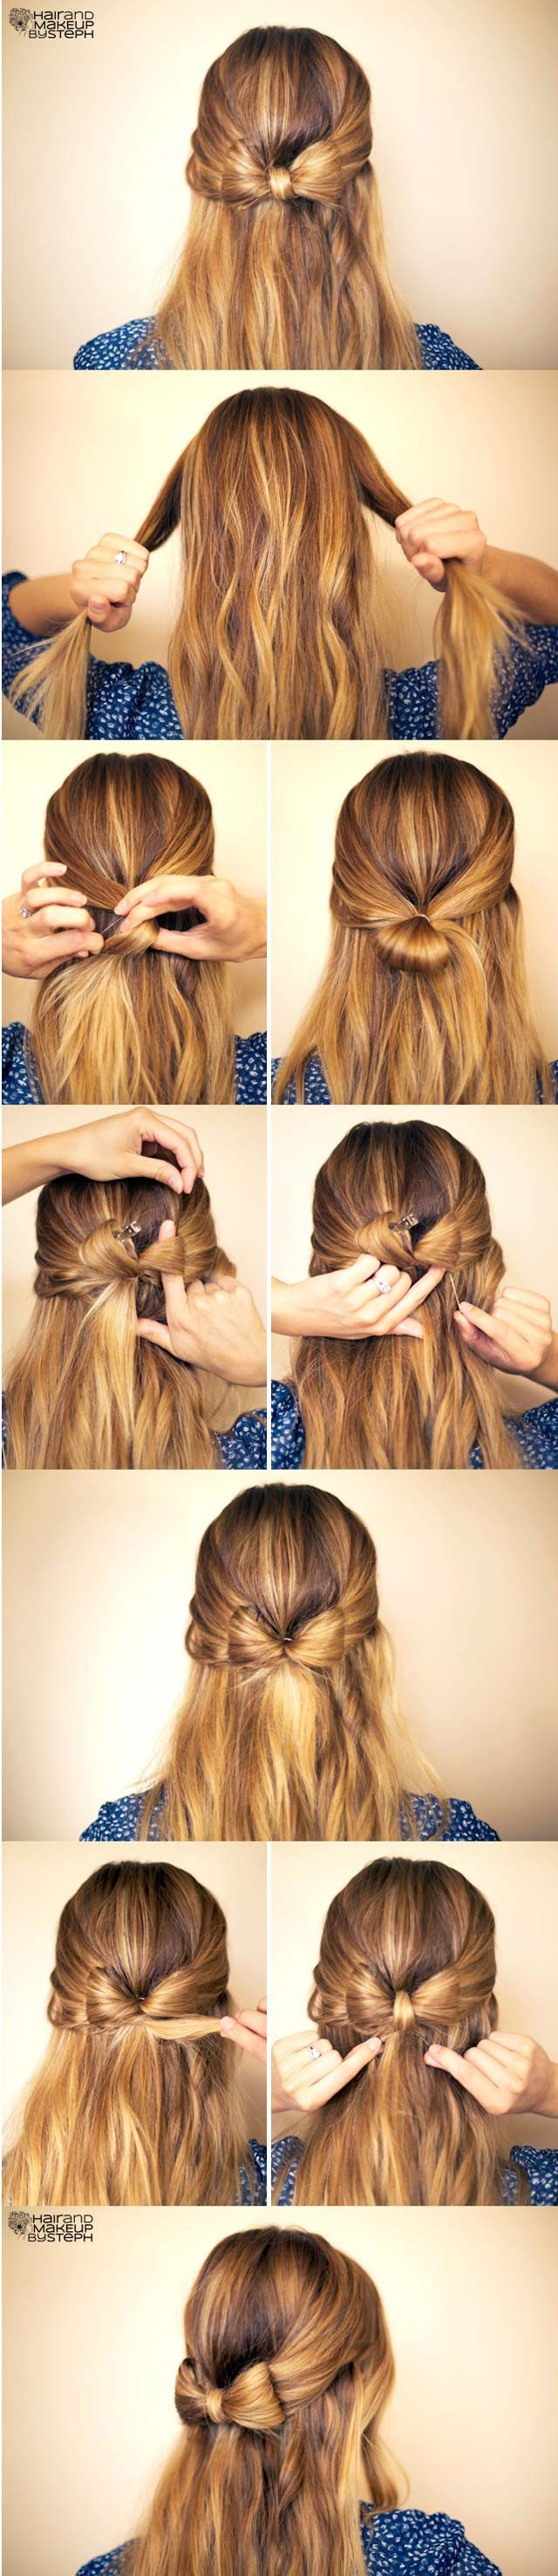 Amazing Nothing Says Its Summer Like A Cute Boho Hairstyle! This Easy Hair Tutorial With A Halfup Lace Braid And Bubble Braid Is No Exception It Has That Cute Bohovibe Thats Casual Enough For Conquering Just About Anything On Those Hot Summer